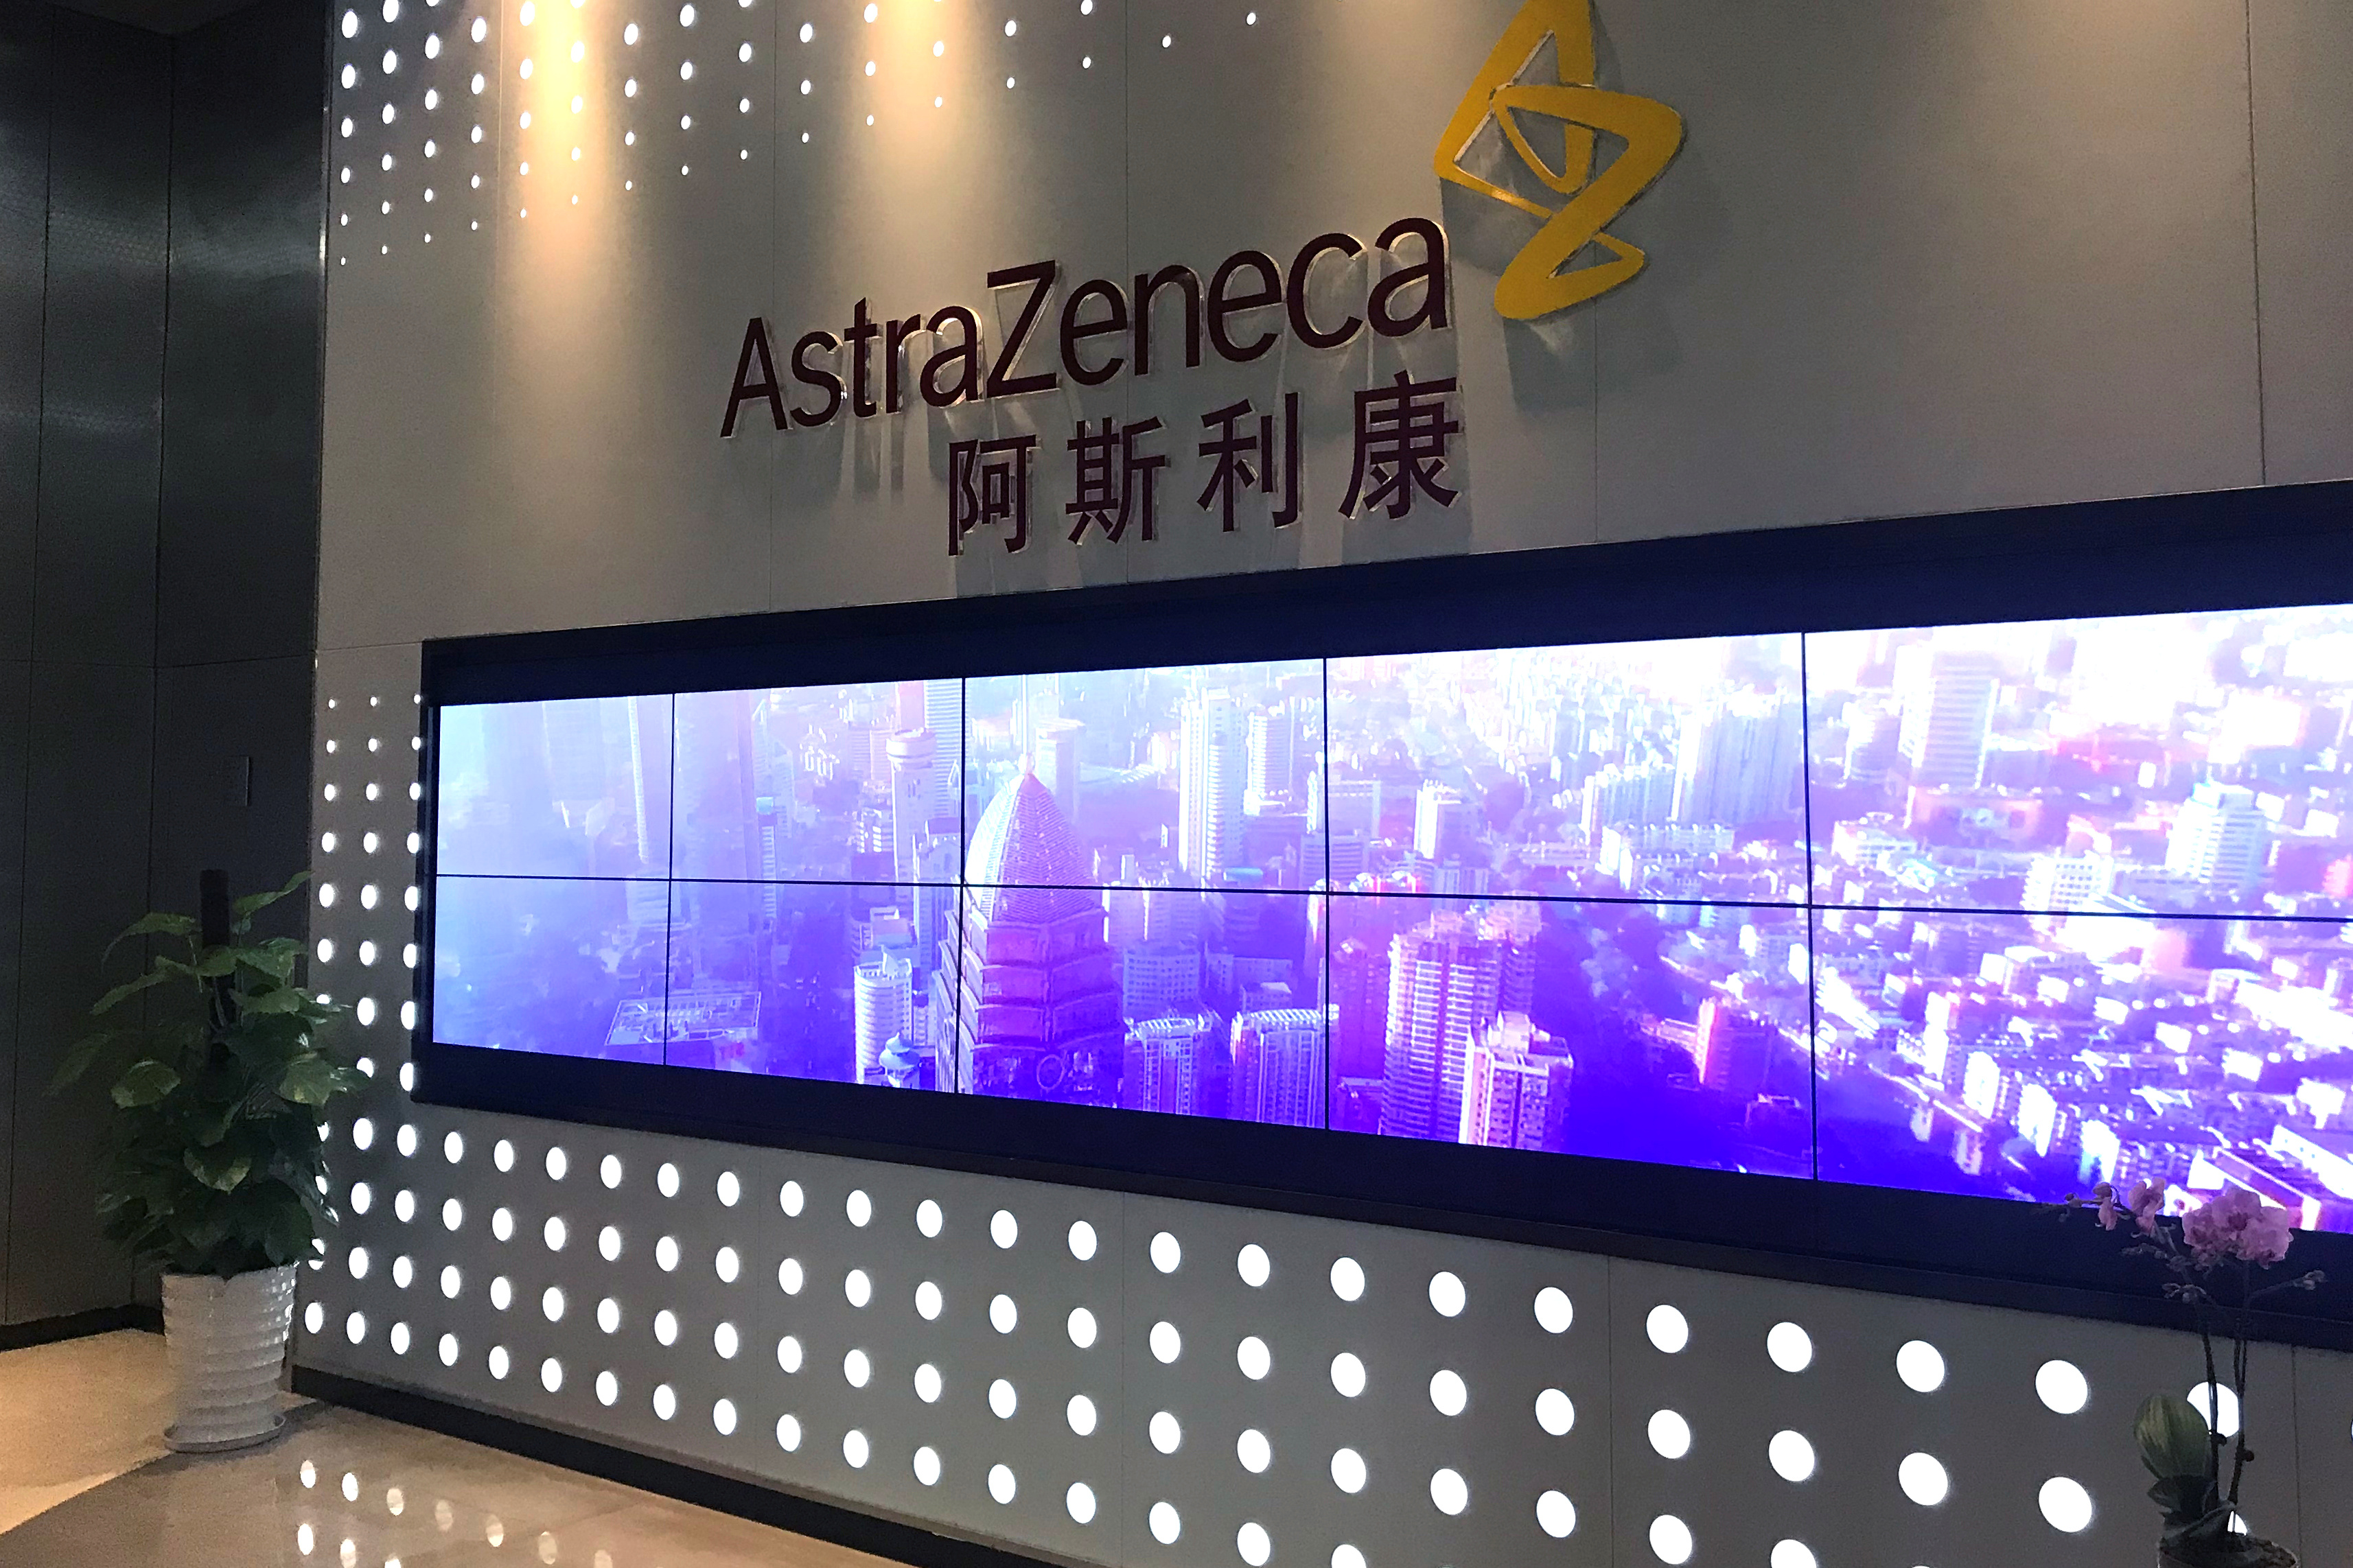 The logo of the British pharmaceutical company AstraZeneca is seen at the company's  China Commercial Innovation Centre (CCIC) in Wuxi, Jiangsu province, China, September 15, 2018. REUTERS/Adam Jourdan/Files